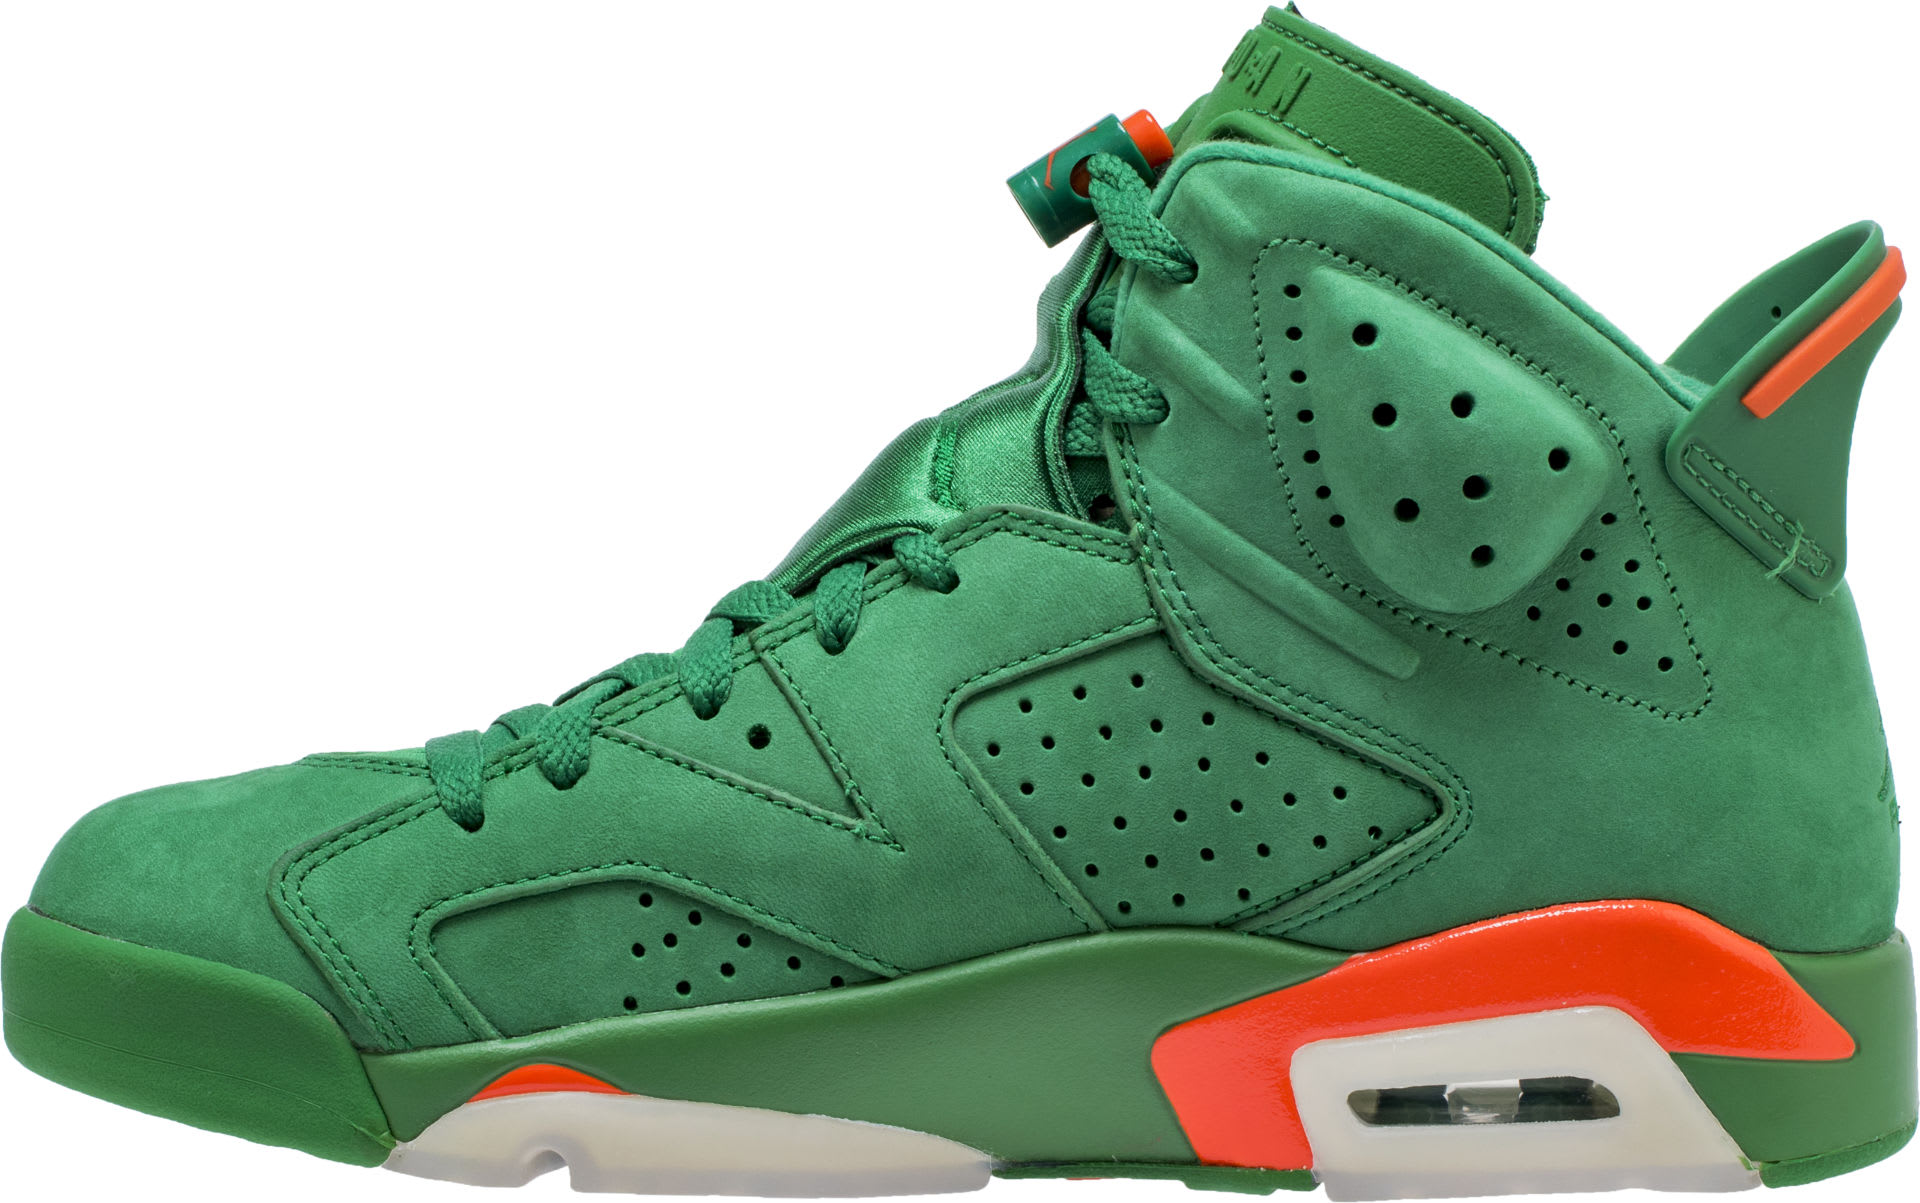 ef97d8d3f01a8d Air Jordan 6 Nrg Gatorade Pine Green Orange Blaze Aj5986 335 Basketball  Shoes  Air Jordan 6 VI Gatorade Green Release Date AJ5986-335 Medial . ...